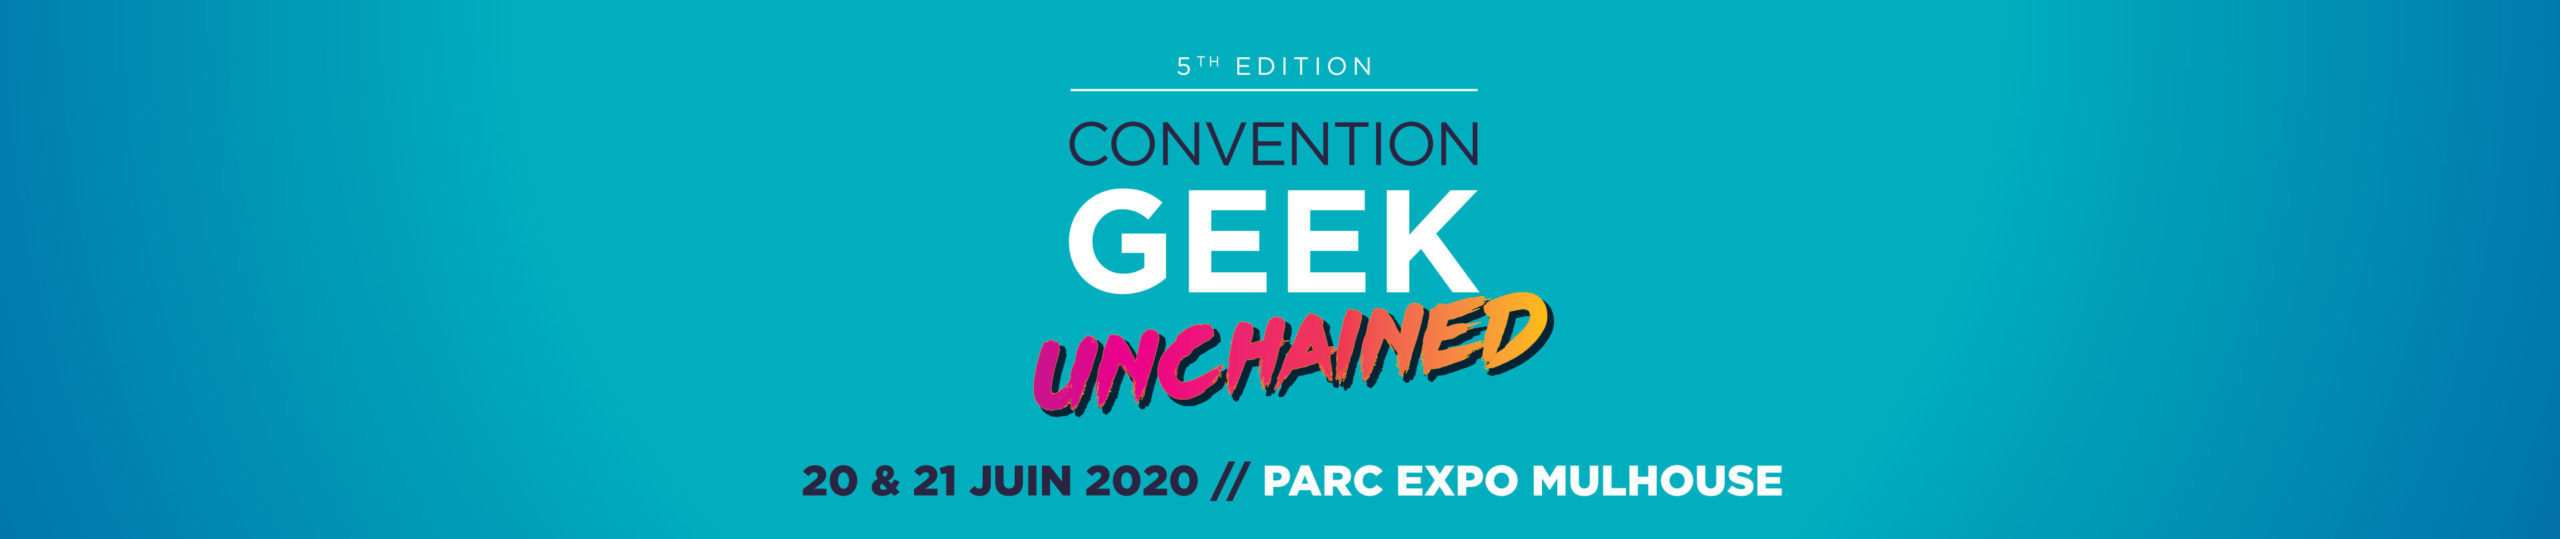 Convention Geek Unchained 5 - Parc Expo Mulhouse - 19-20 juin 2021